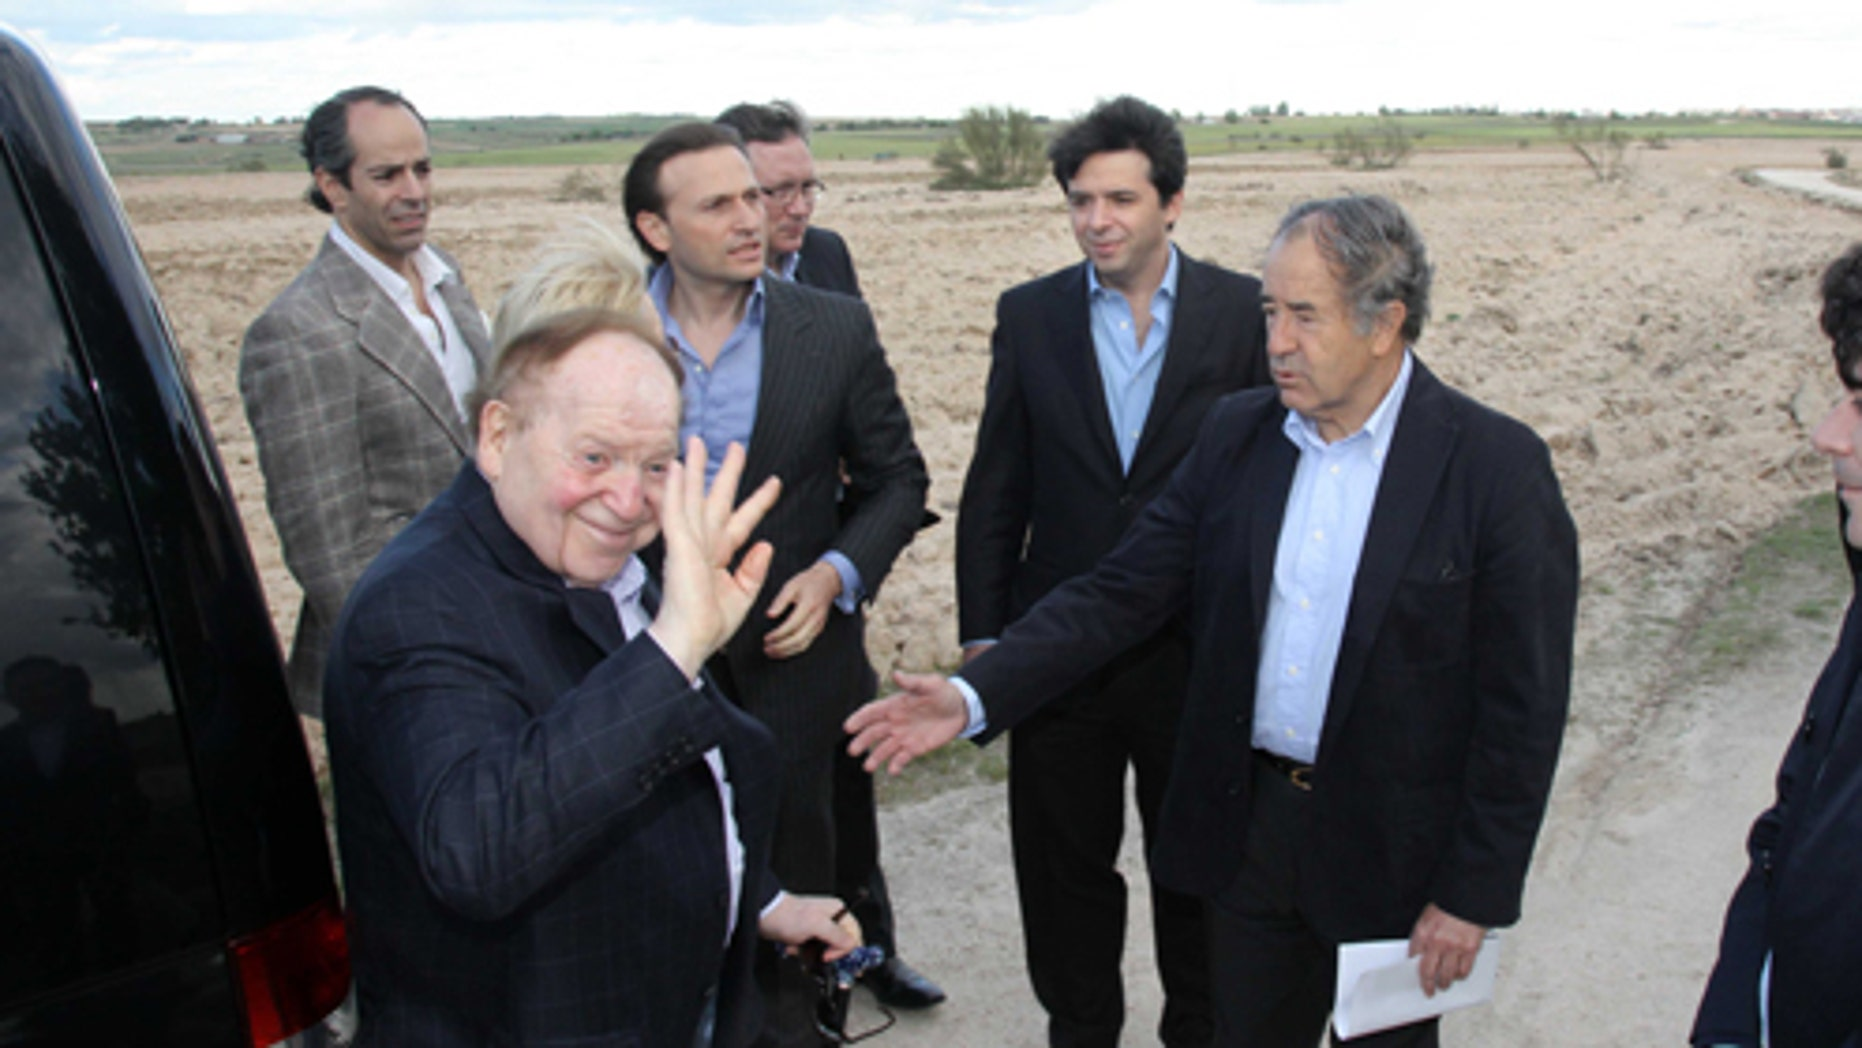 In this photo released by the Madrid Regional Government on May 6,  2012,  CEO of Las Vegas Sands Corp. Sheldon Adelson, left in foreground, waves while visiting Alcorcon, which was one of the possible sites for the EuroVegas project on the outskirts of Madrid, with others unidentified. (AP Photo/Comunidad de Madrid)